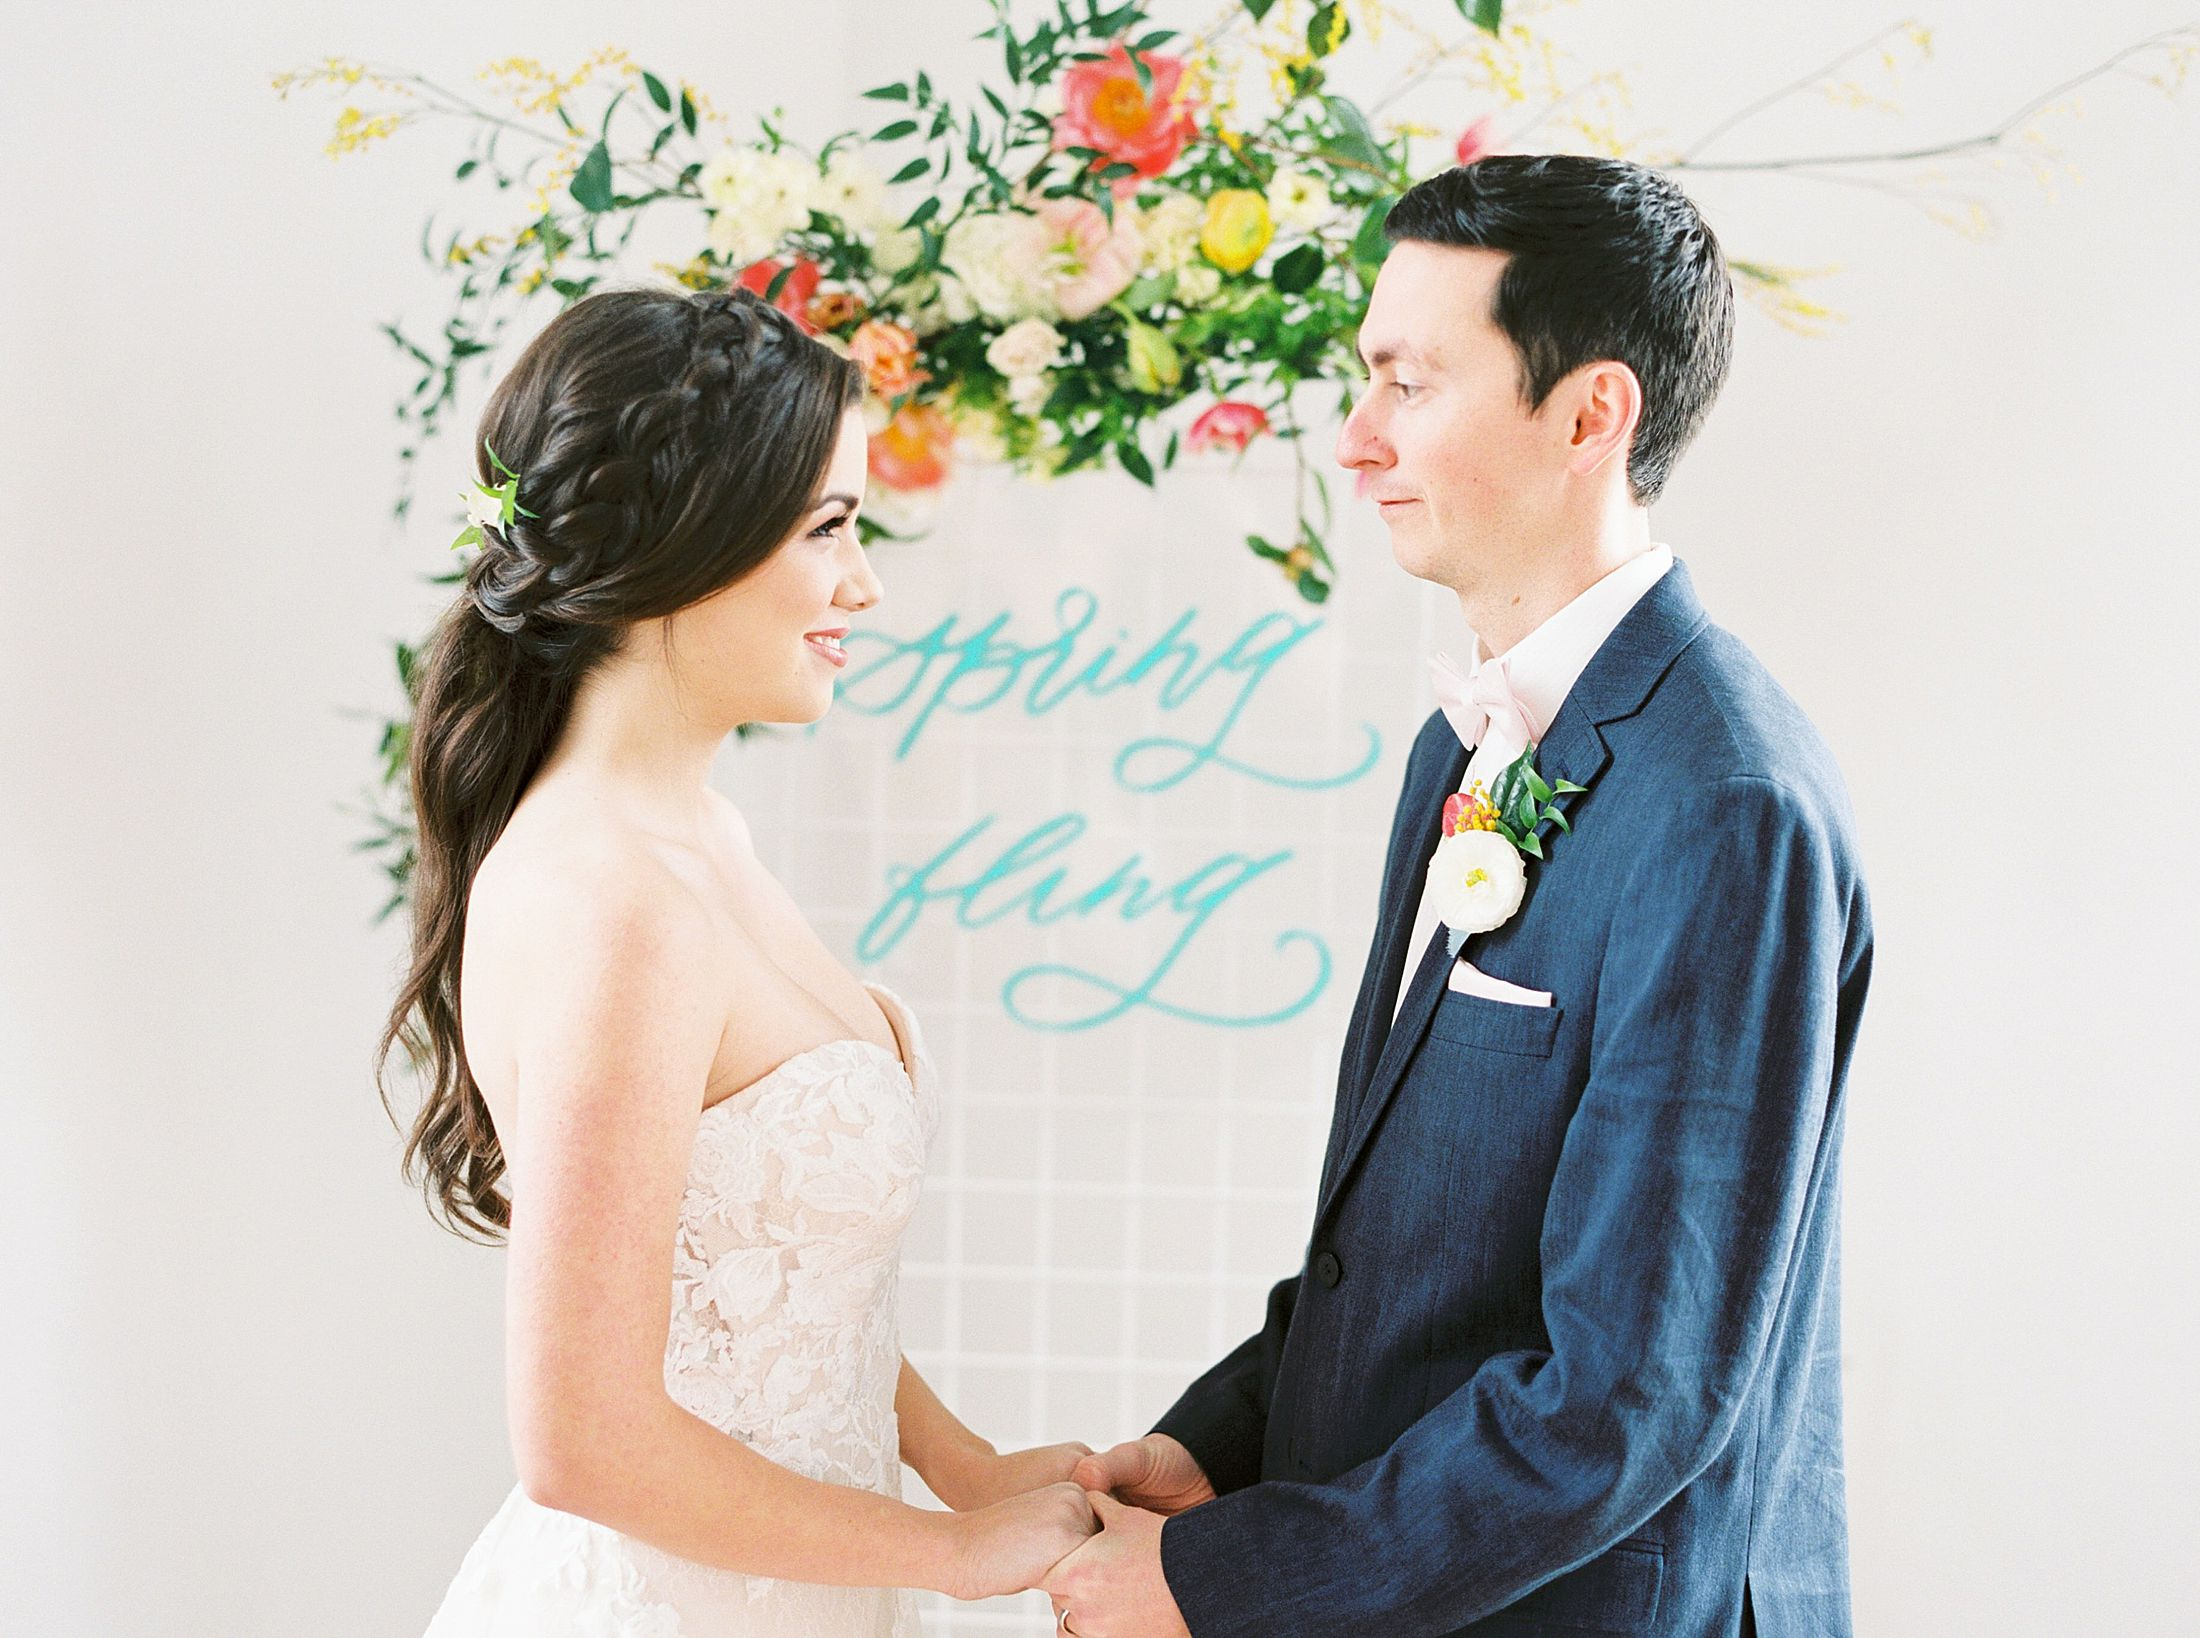 Bay Area Spring Wedding Inspiration - Ashley Baumgartner - Inspired By This - Party Crush Studio and Lens of Lenox Videography - Bay Area Wedding Photography_0040.jpg